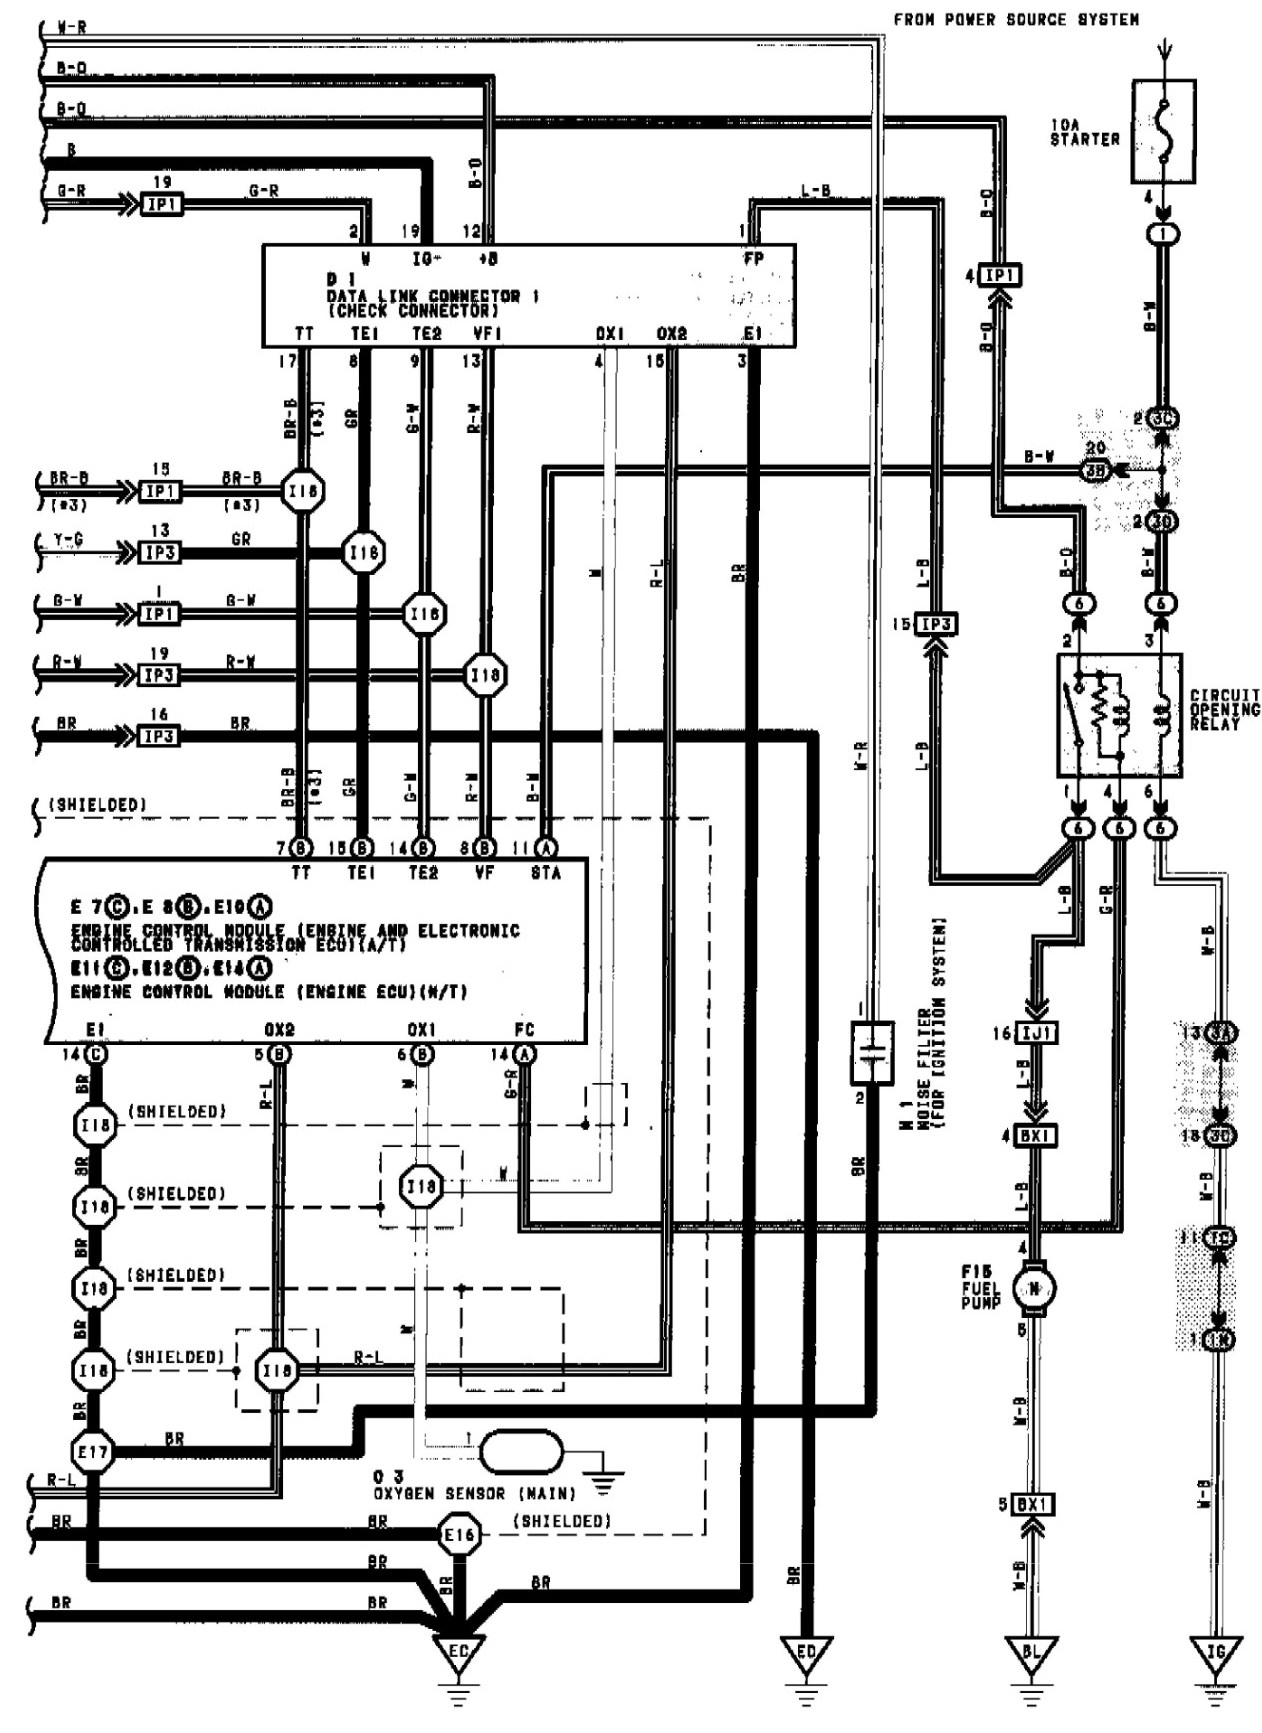 1994 toyota camry i check the fuel pump wiring graphic